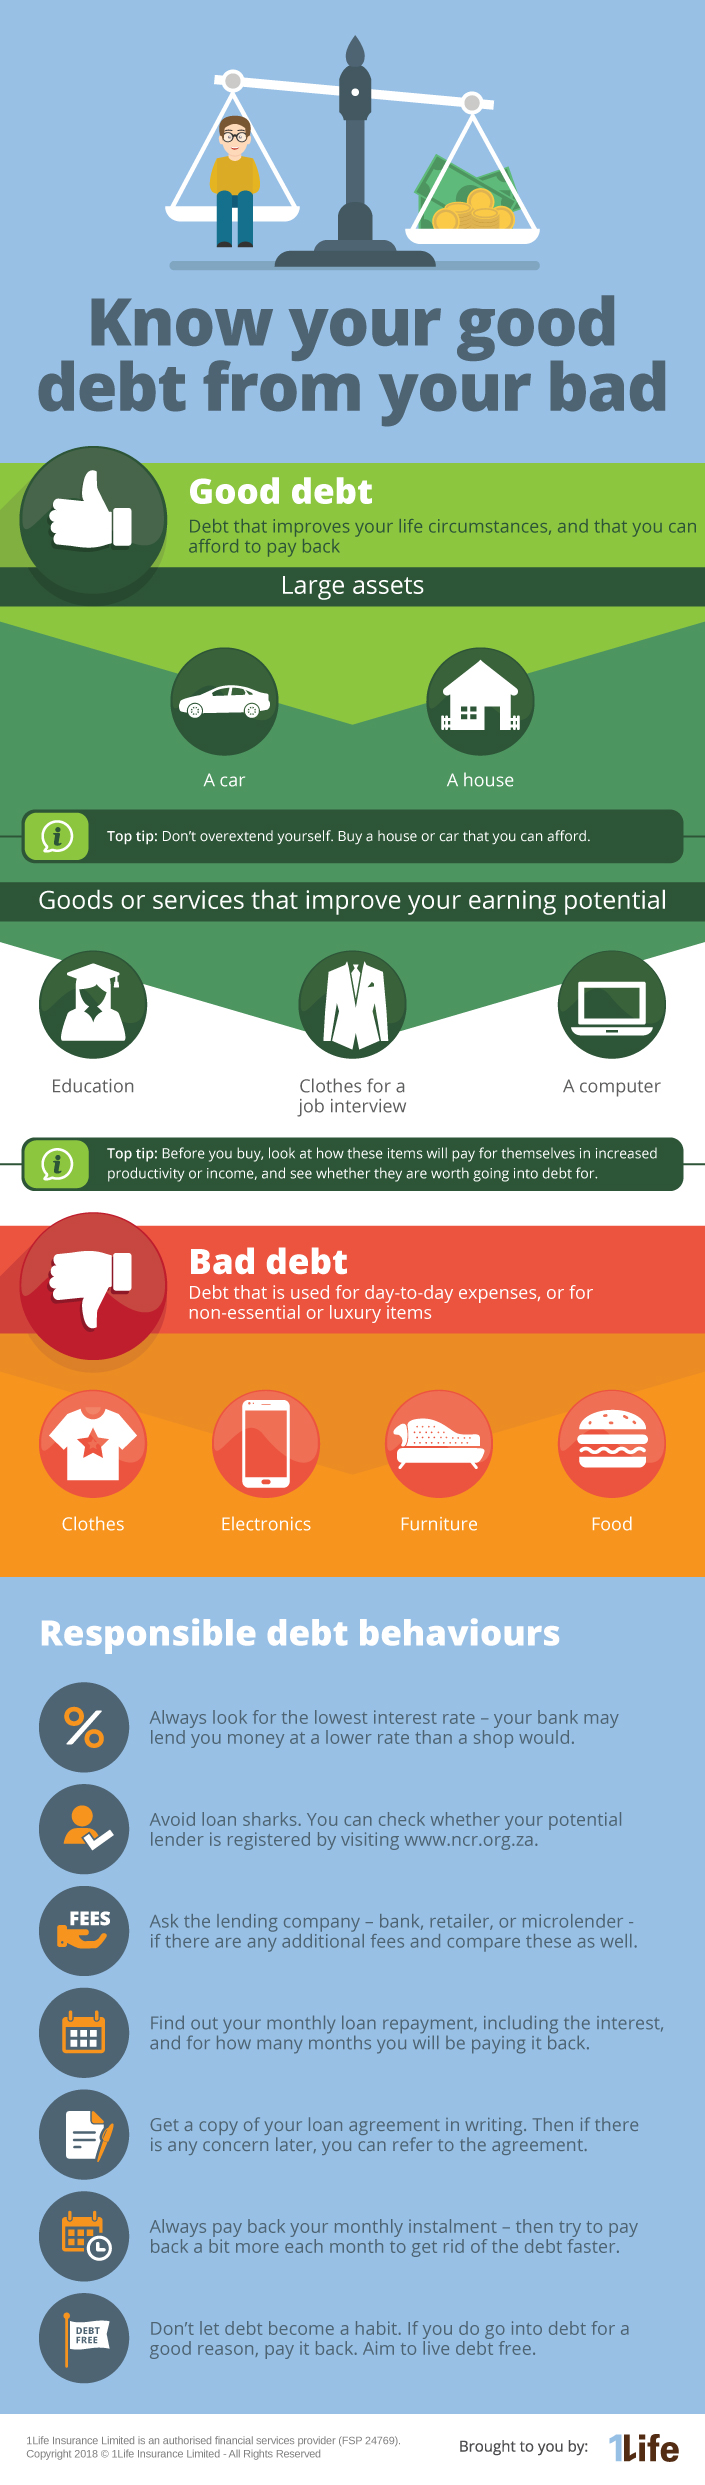 1Life_April-Infographic-GoodDebt